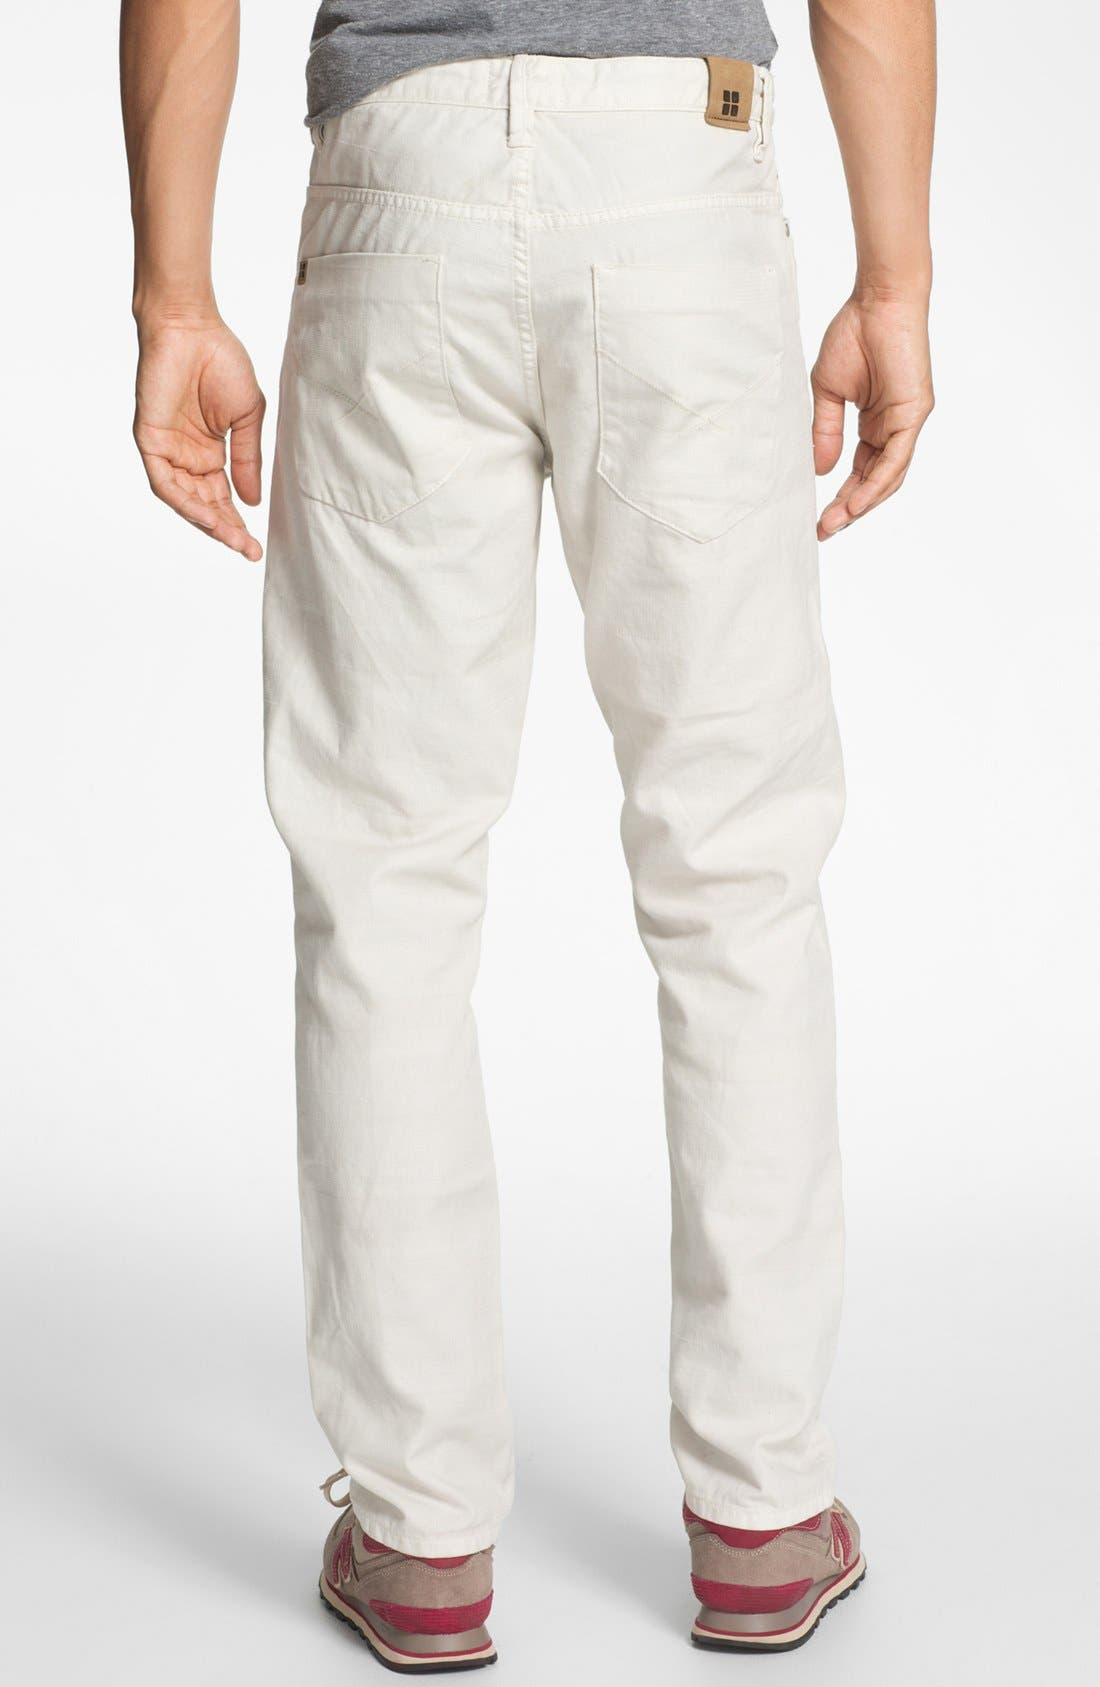 Alternate Image 1 Selected - Insight 'Loose Joints' Slim Leg Jeans (Stoned)